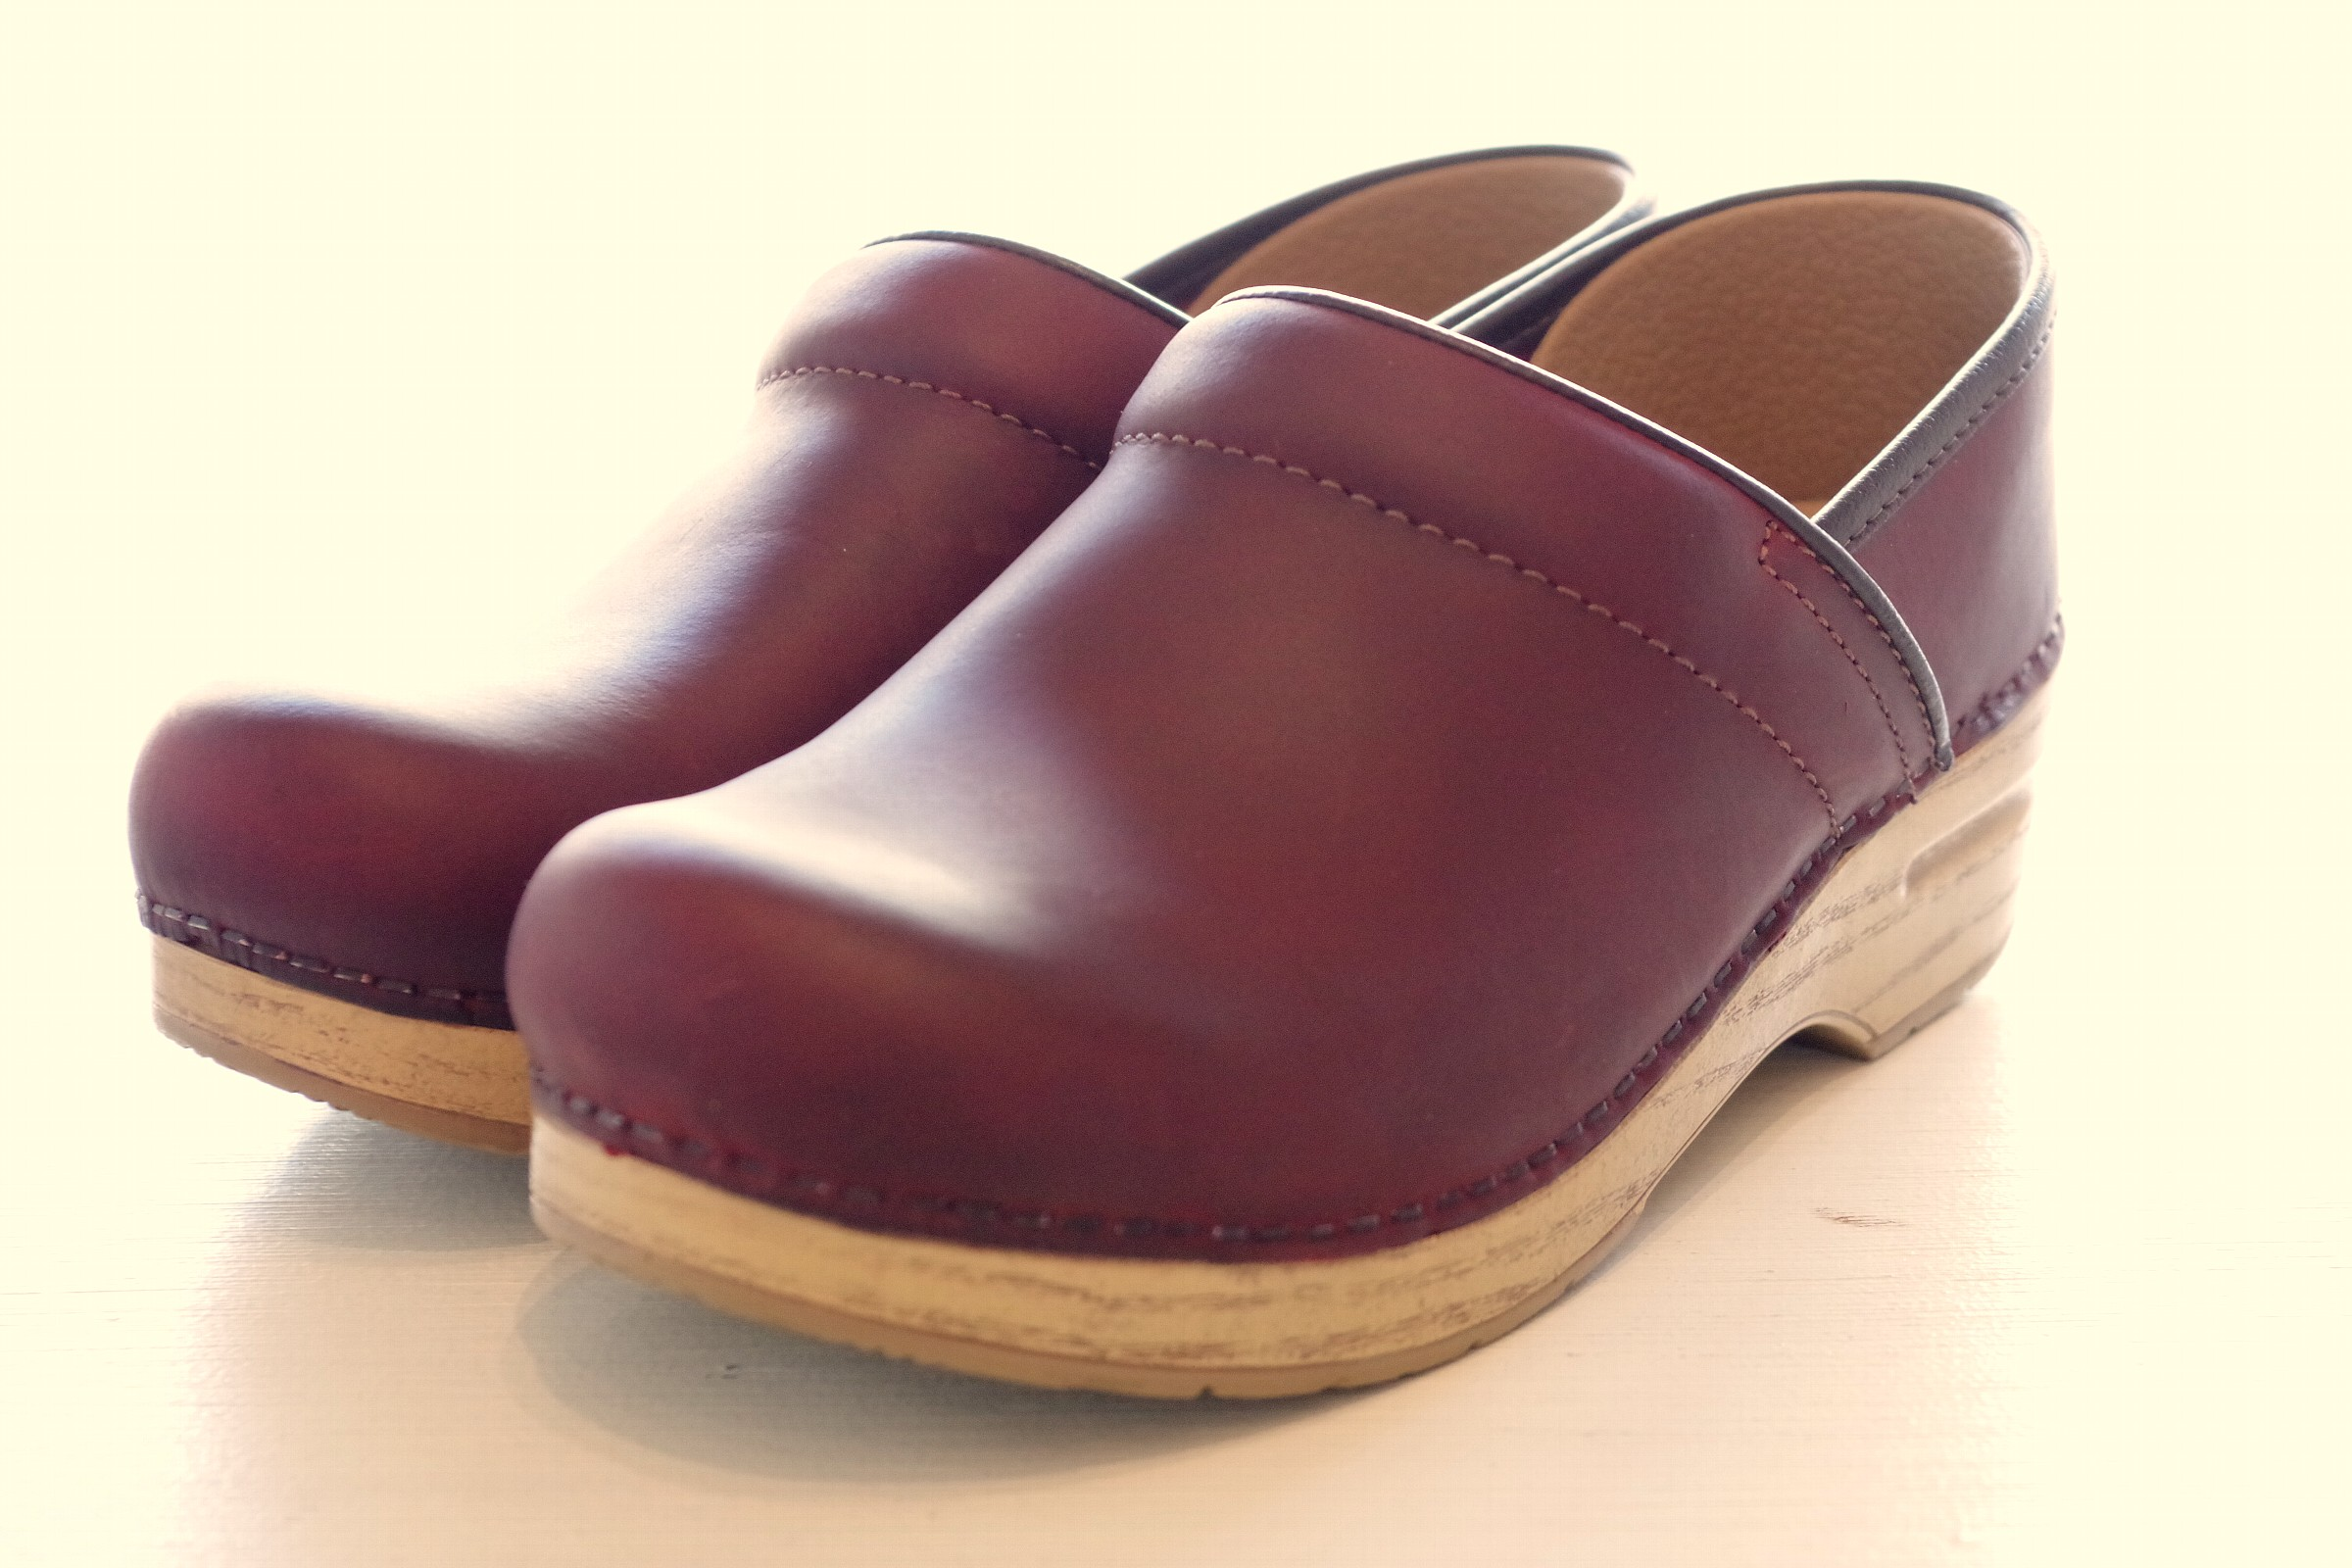 Professional RedOiled/Natural Sole size:36-42 24,000-(w/o tax)